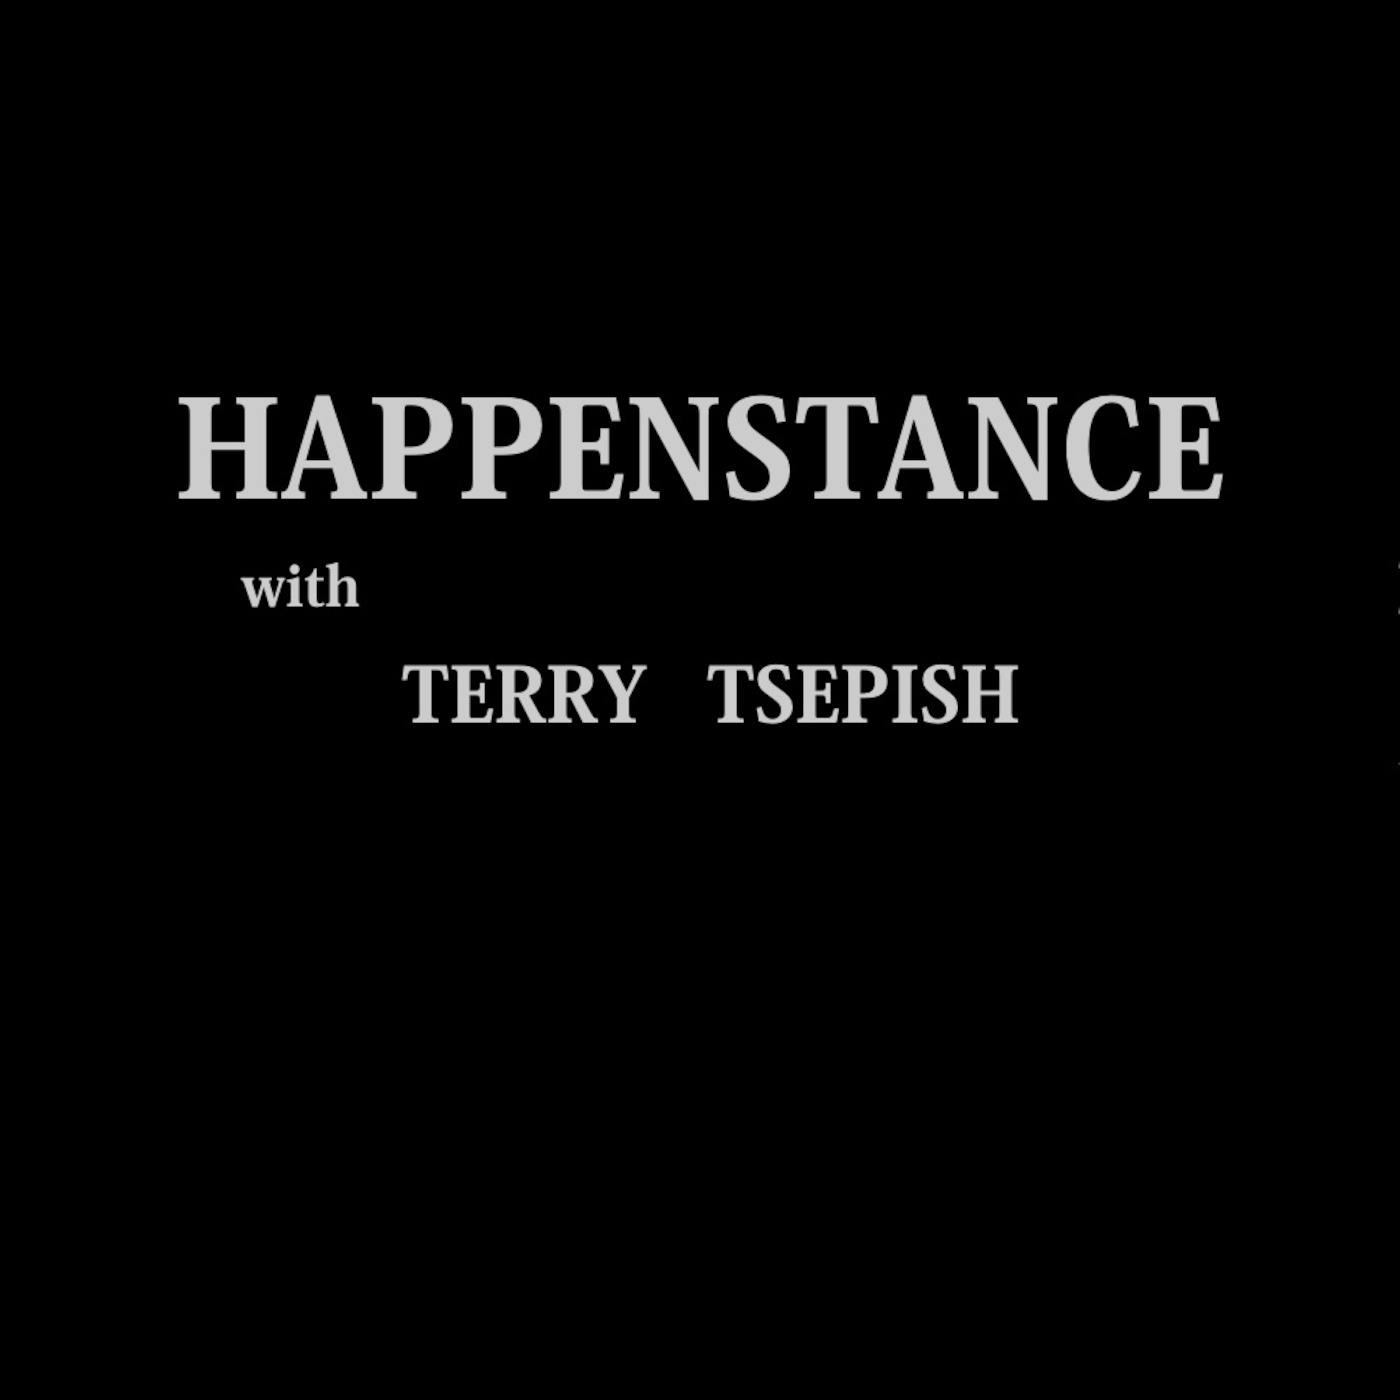 Happenstance --- with Terry Tsepish